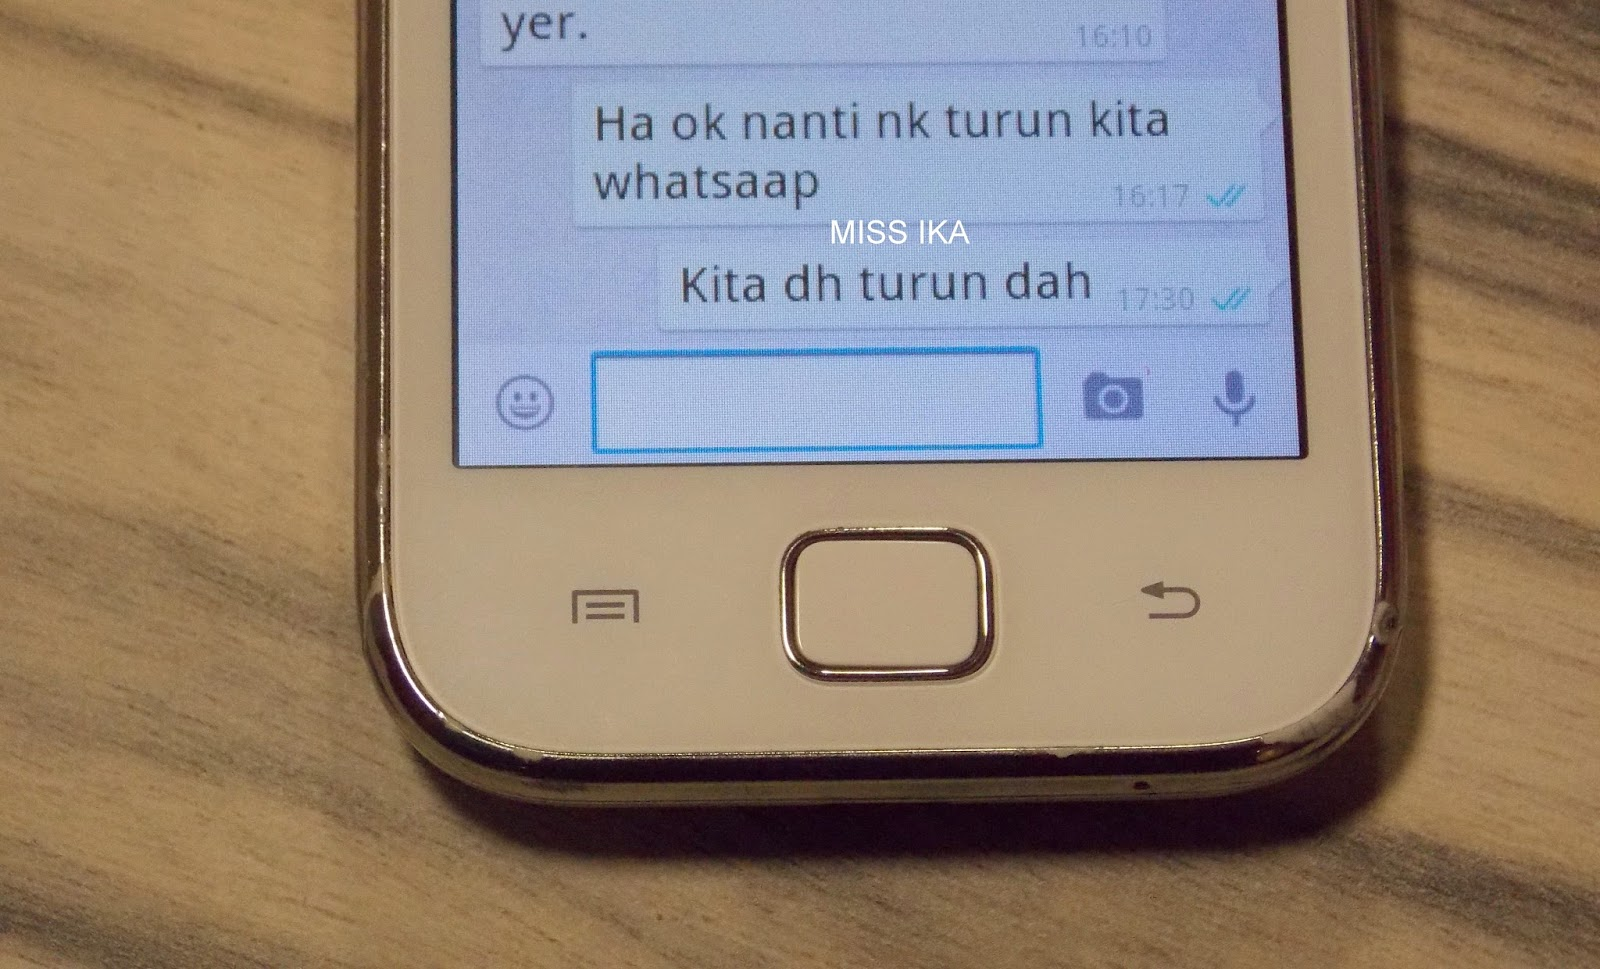 WHATSAPP HAS A NEW BLUE TICK FEATURE